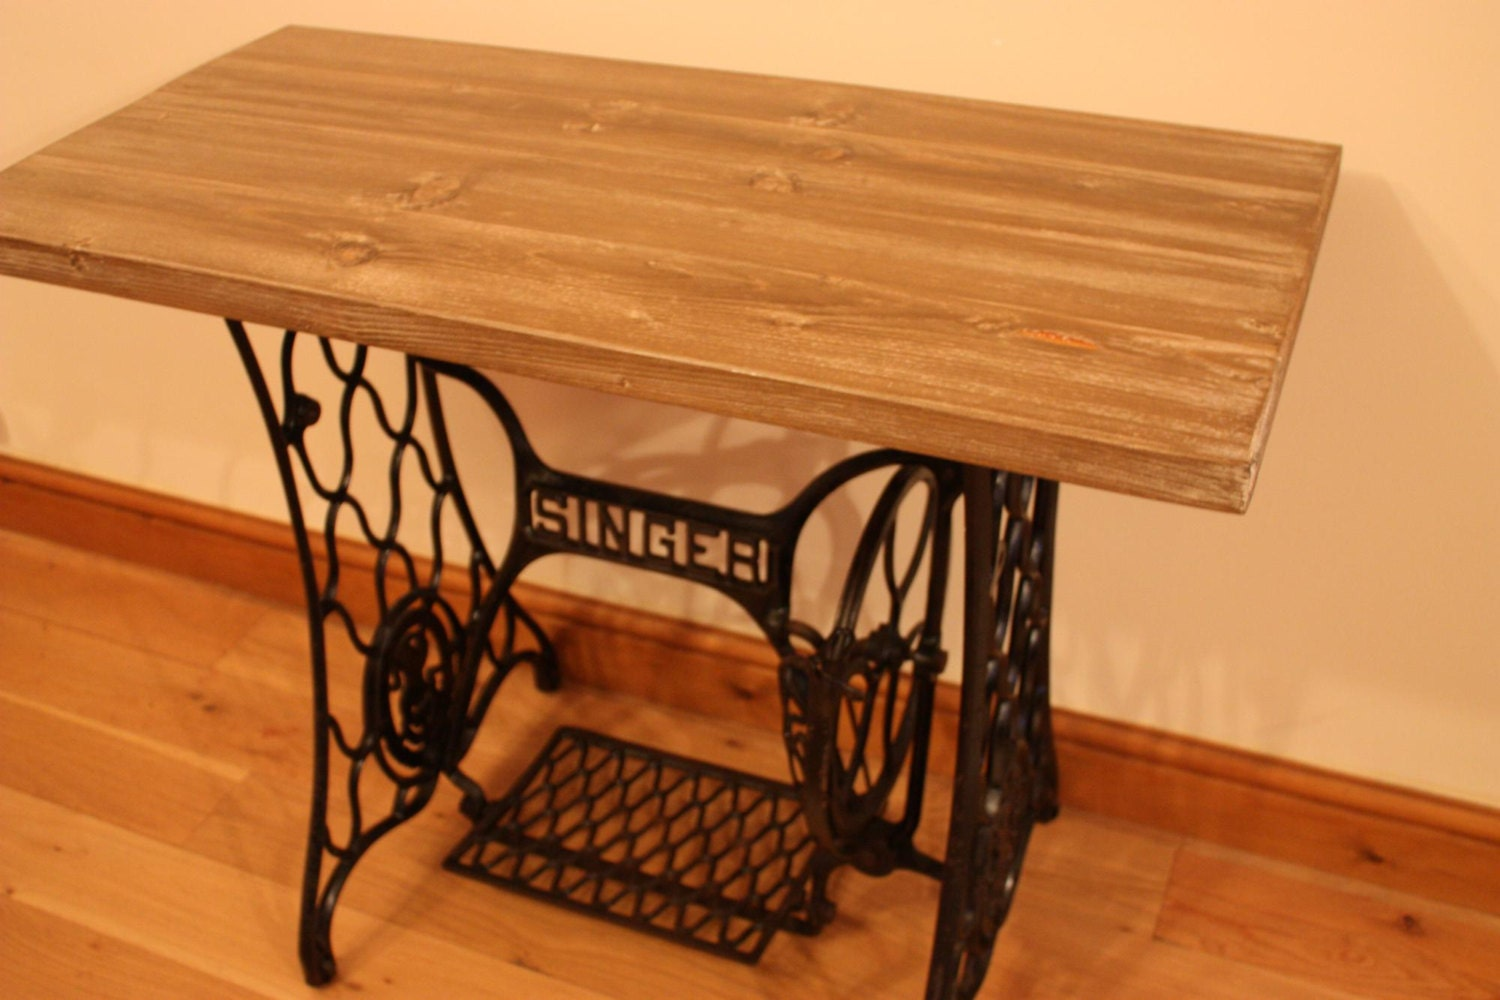 Singer sewing machine treadle table - Singer sewing machine table ...